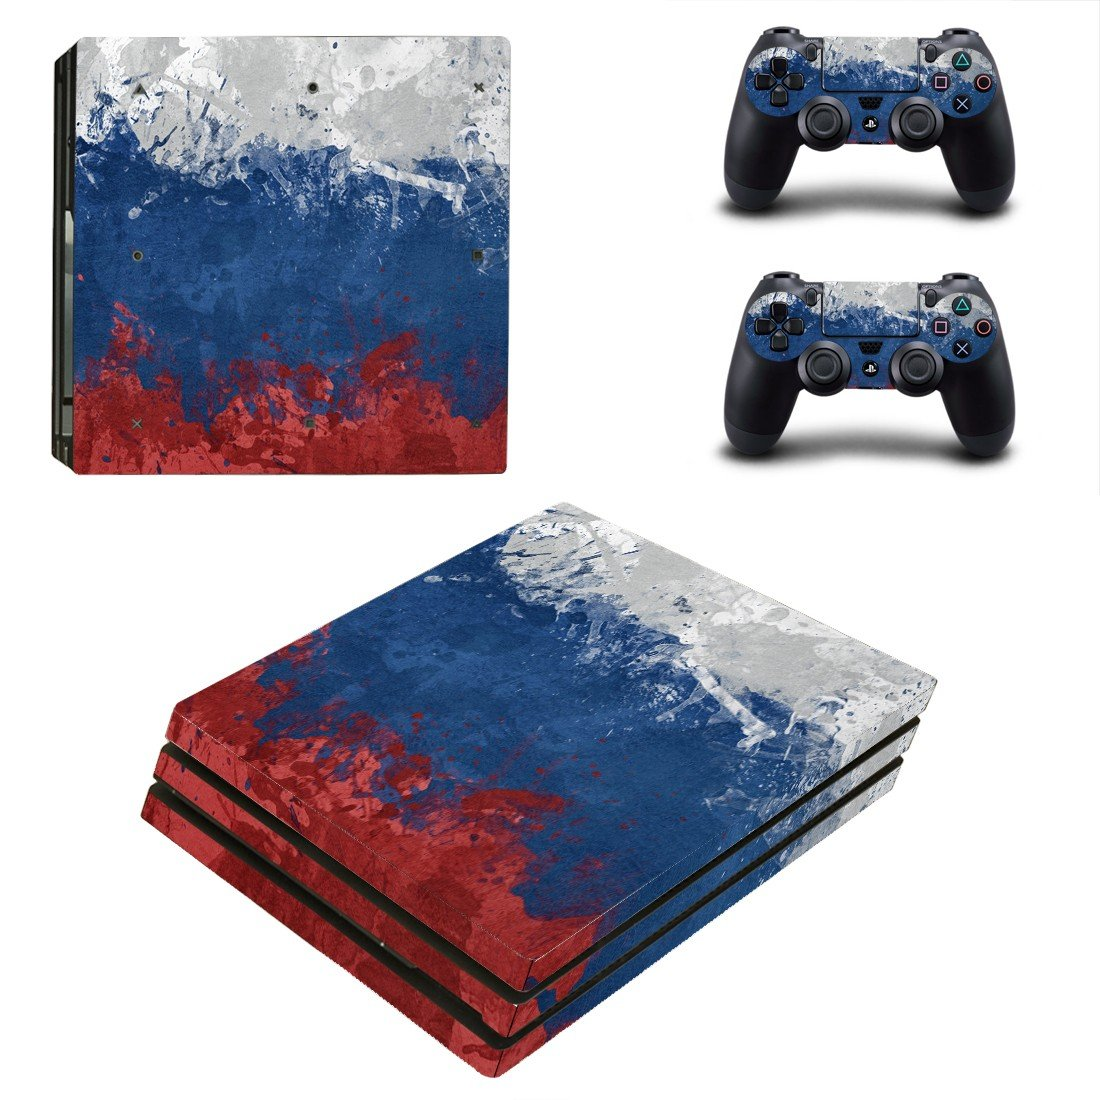 Painted Picturedecal skin sticker for PS4 Pro console and controllers